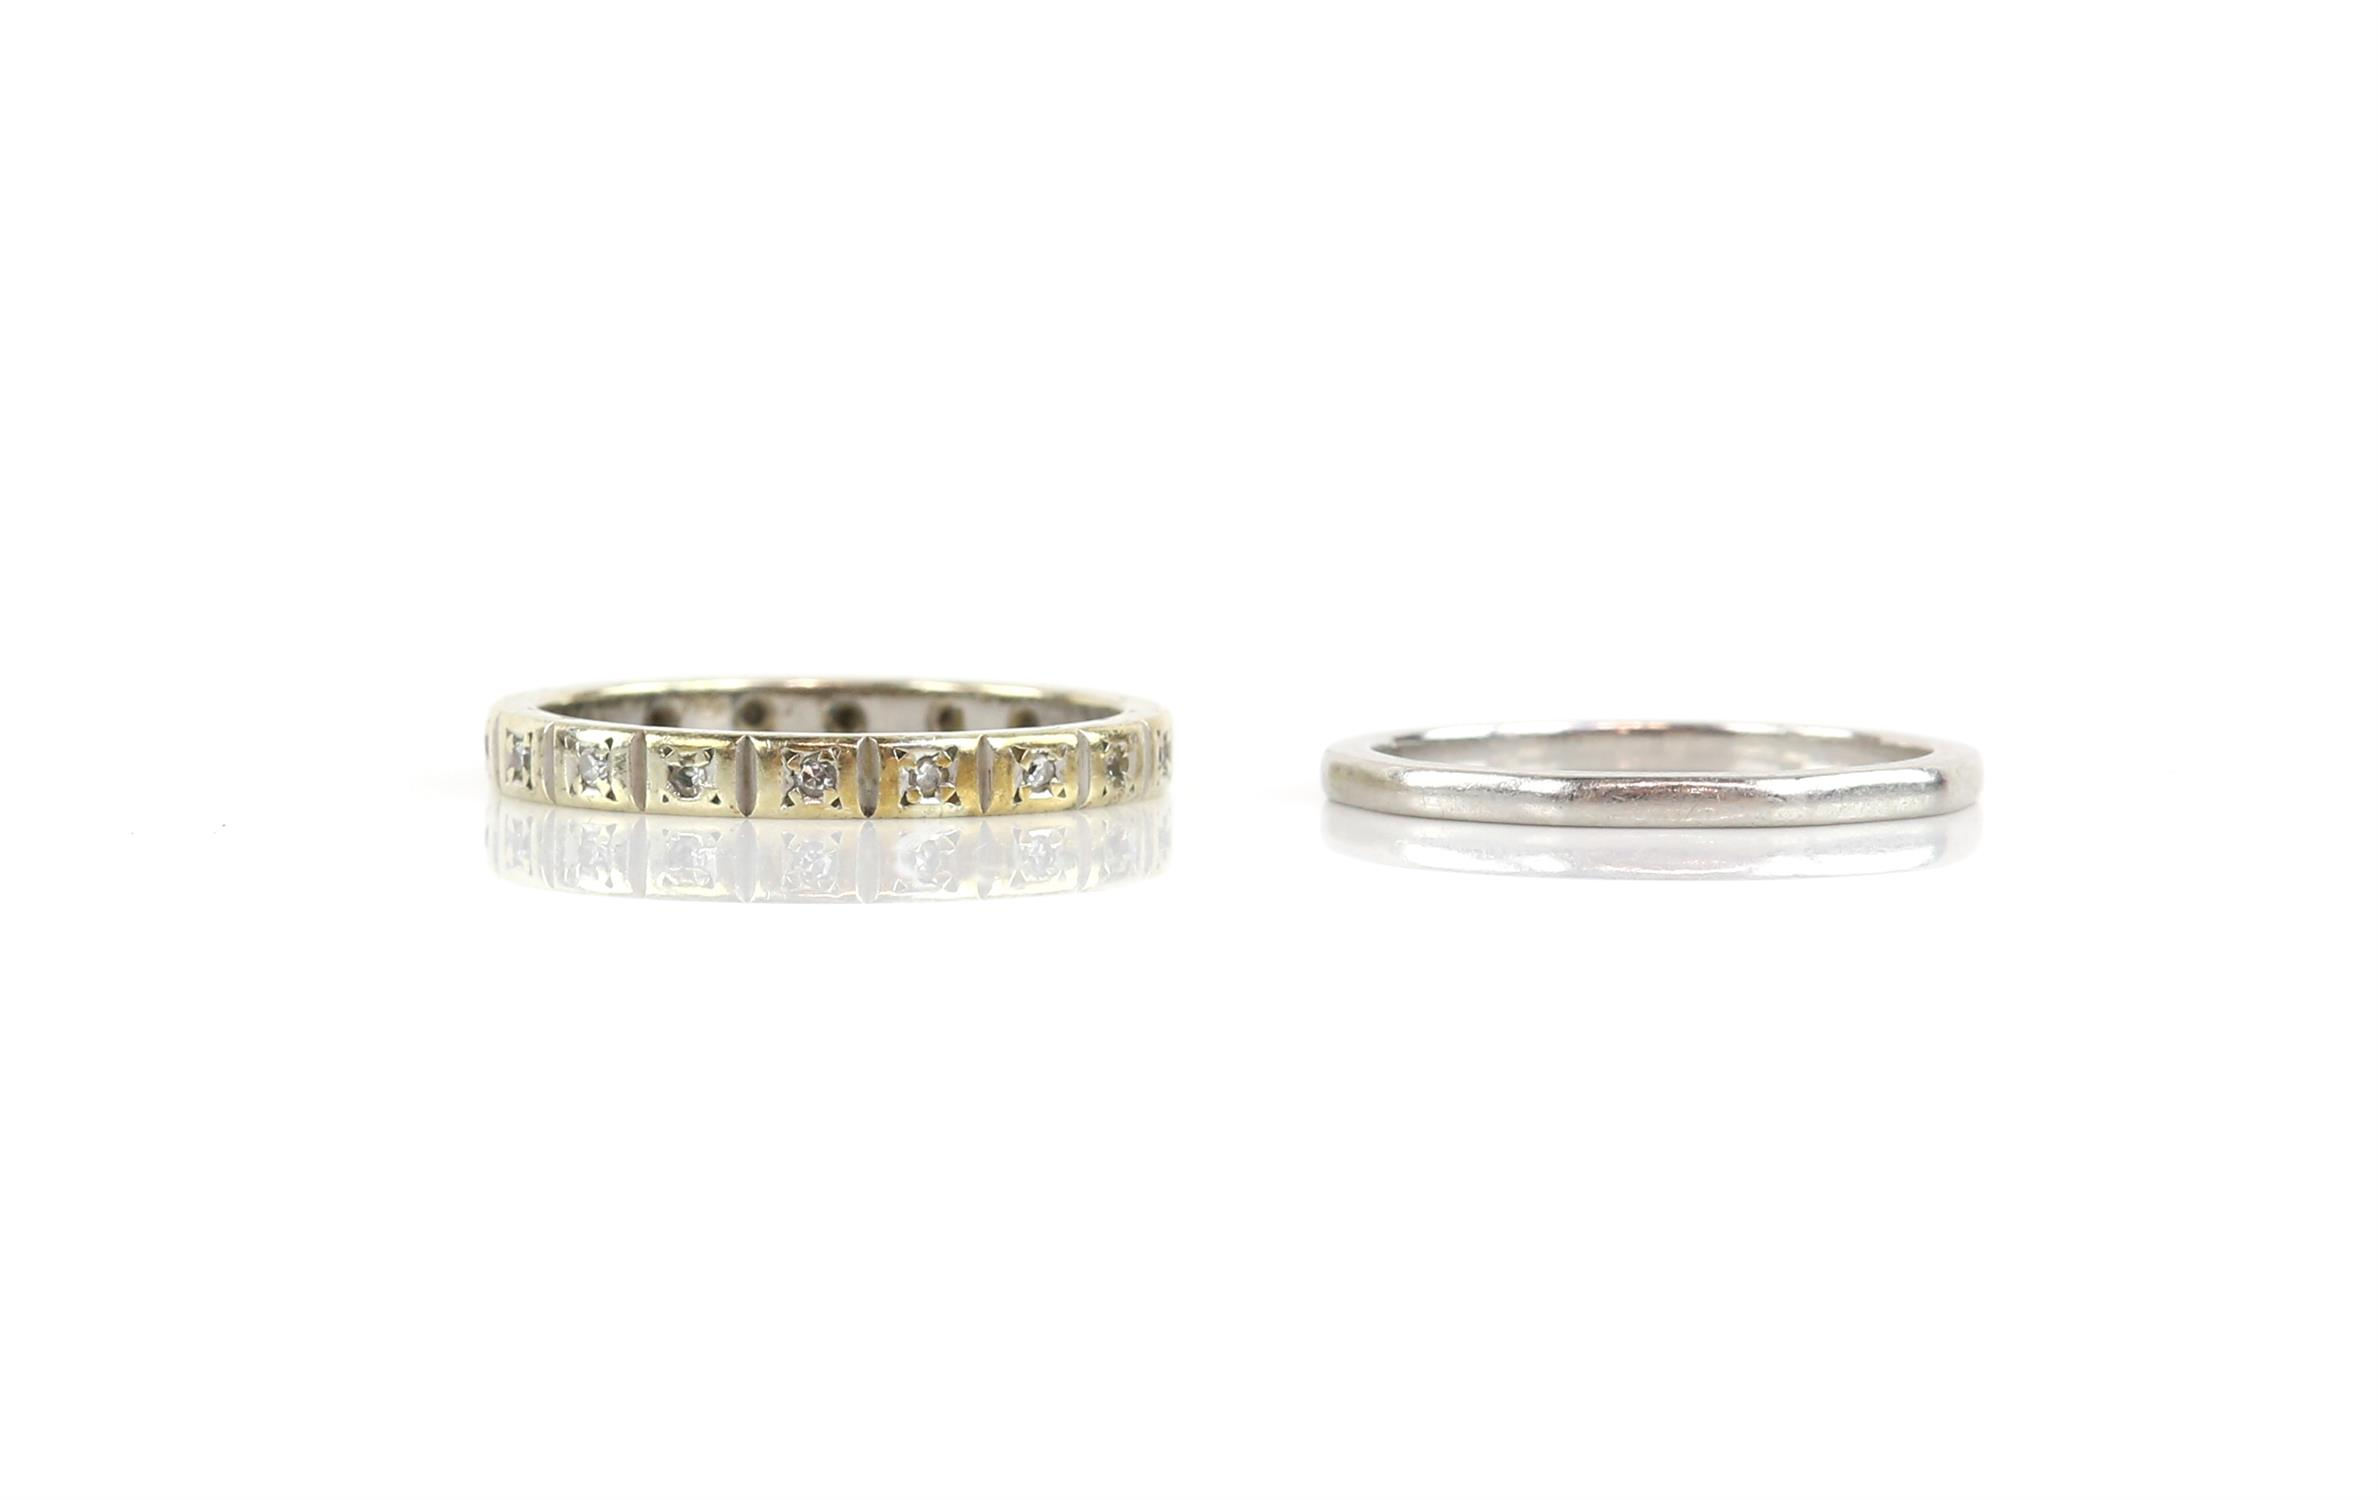 Two rings, one shaped platinum band, size N and a diamond full eternity ring, stamped 9 ct,